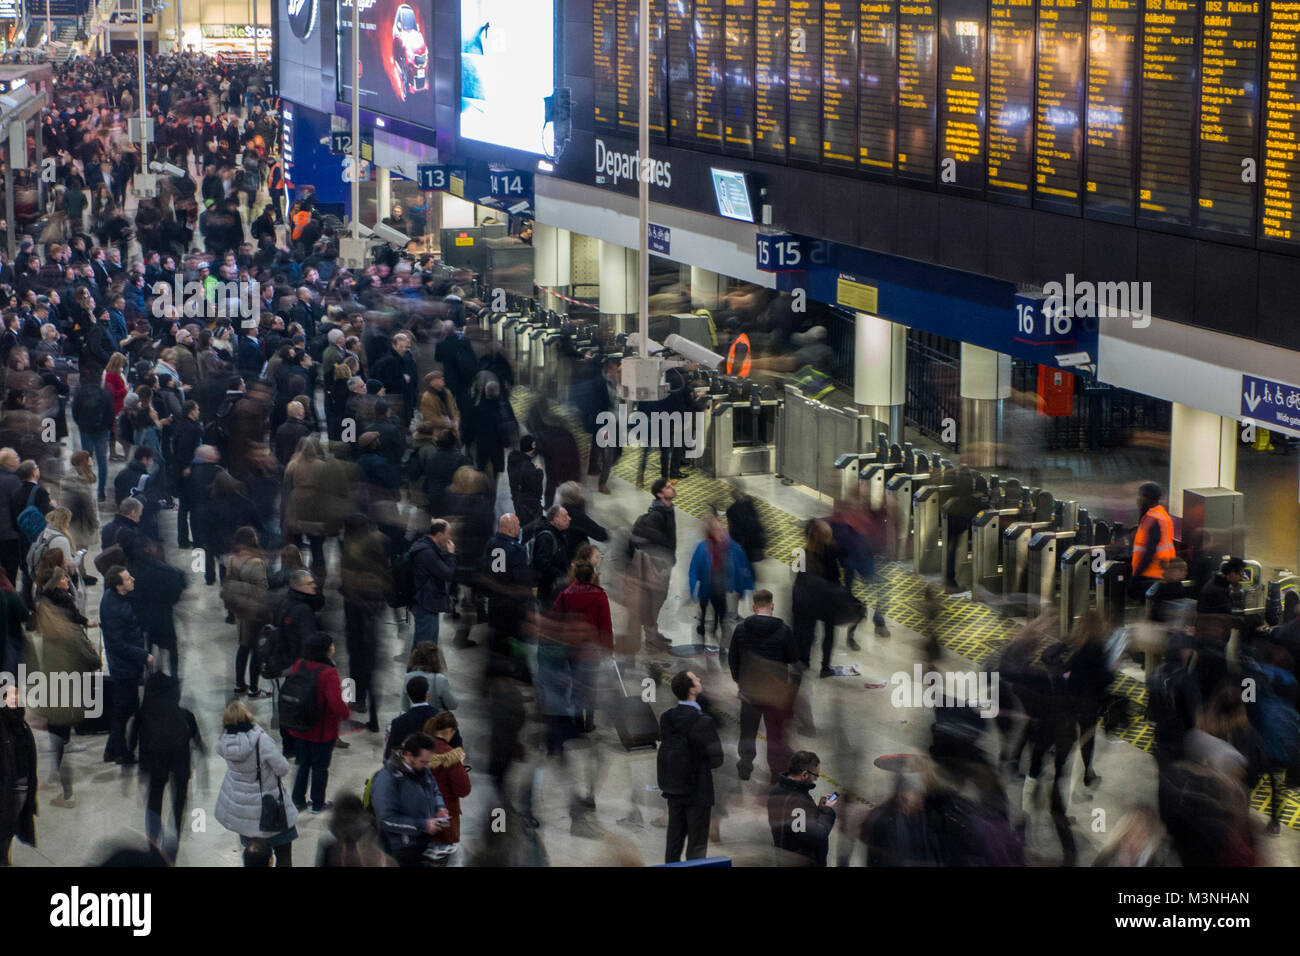 Horrendous crowds at Waterloo station trying to get home - Stock Image